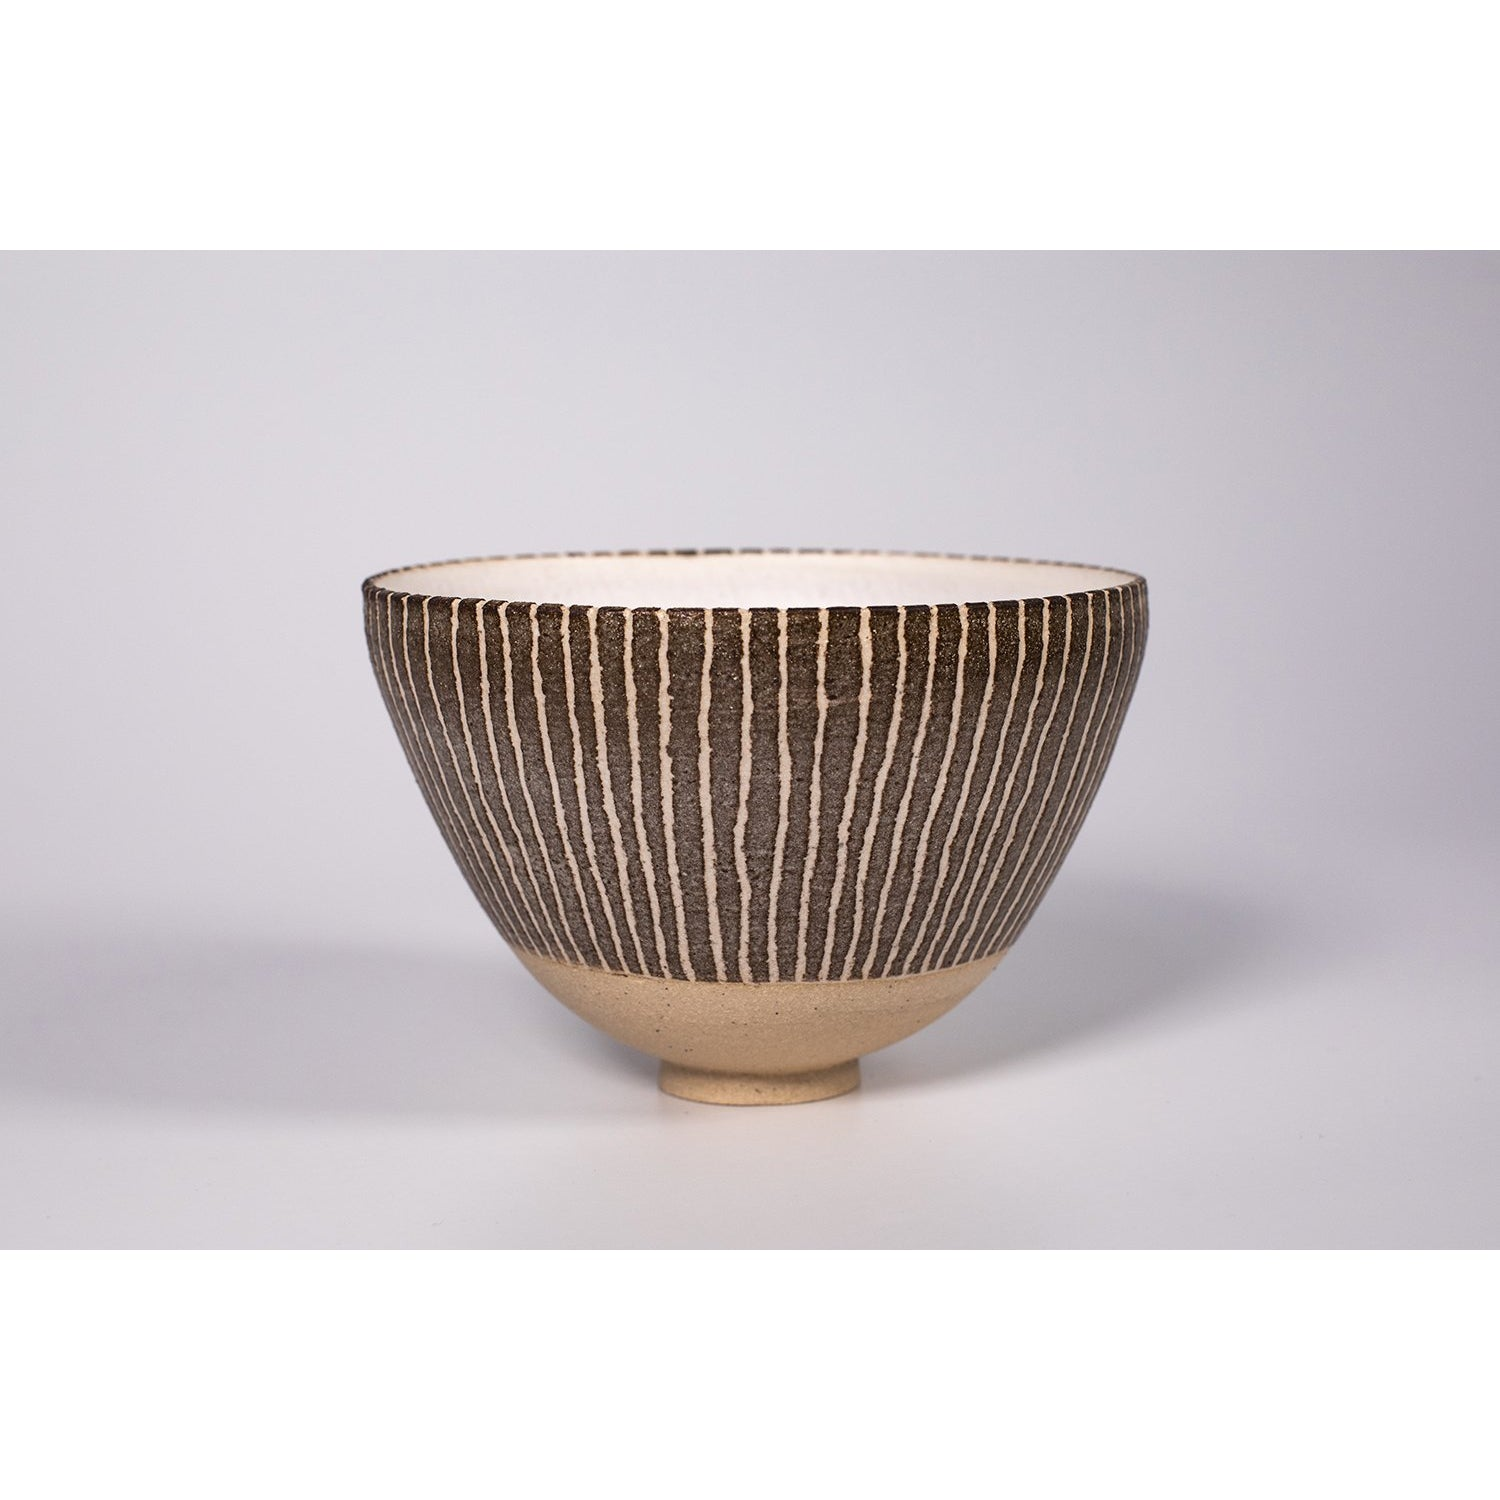 AP4 textured vessel, flecked stoneware, wheel-thrown by Ania Perkowska. Available at Padstow Gallery, Cornwall